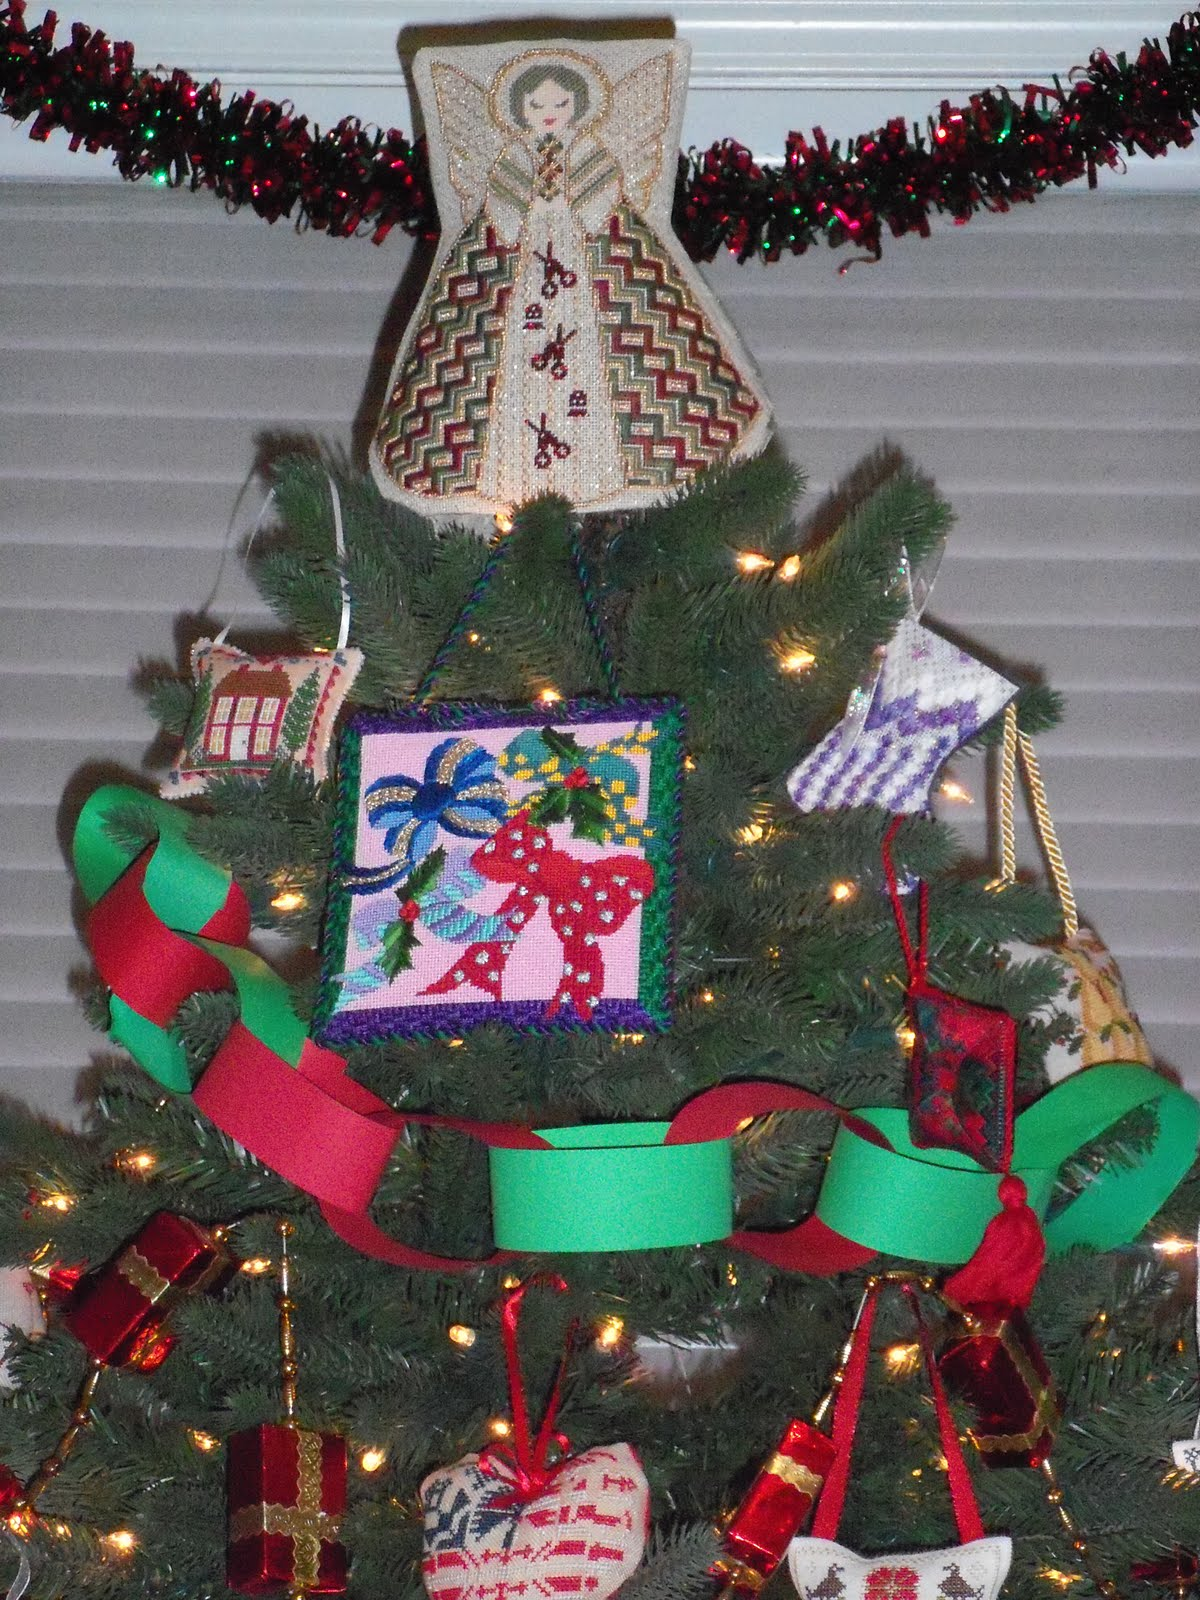 At Willow Tree Pond Christmas Angel Tree Topper Is On The Tree